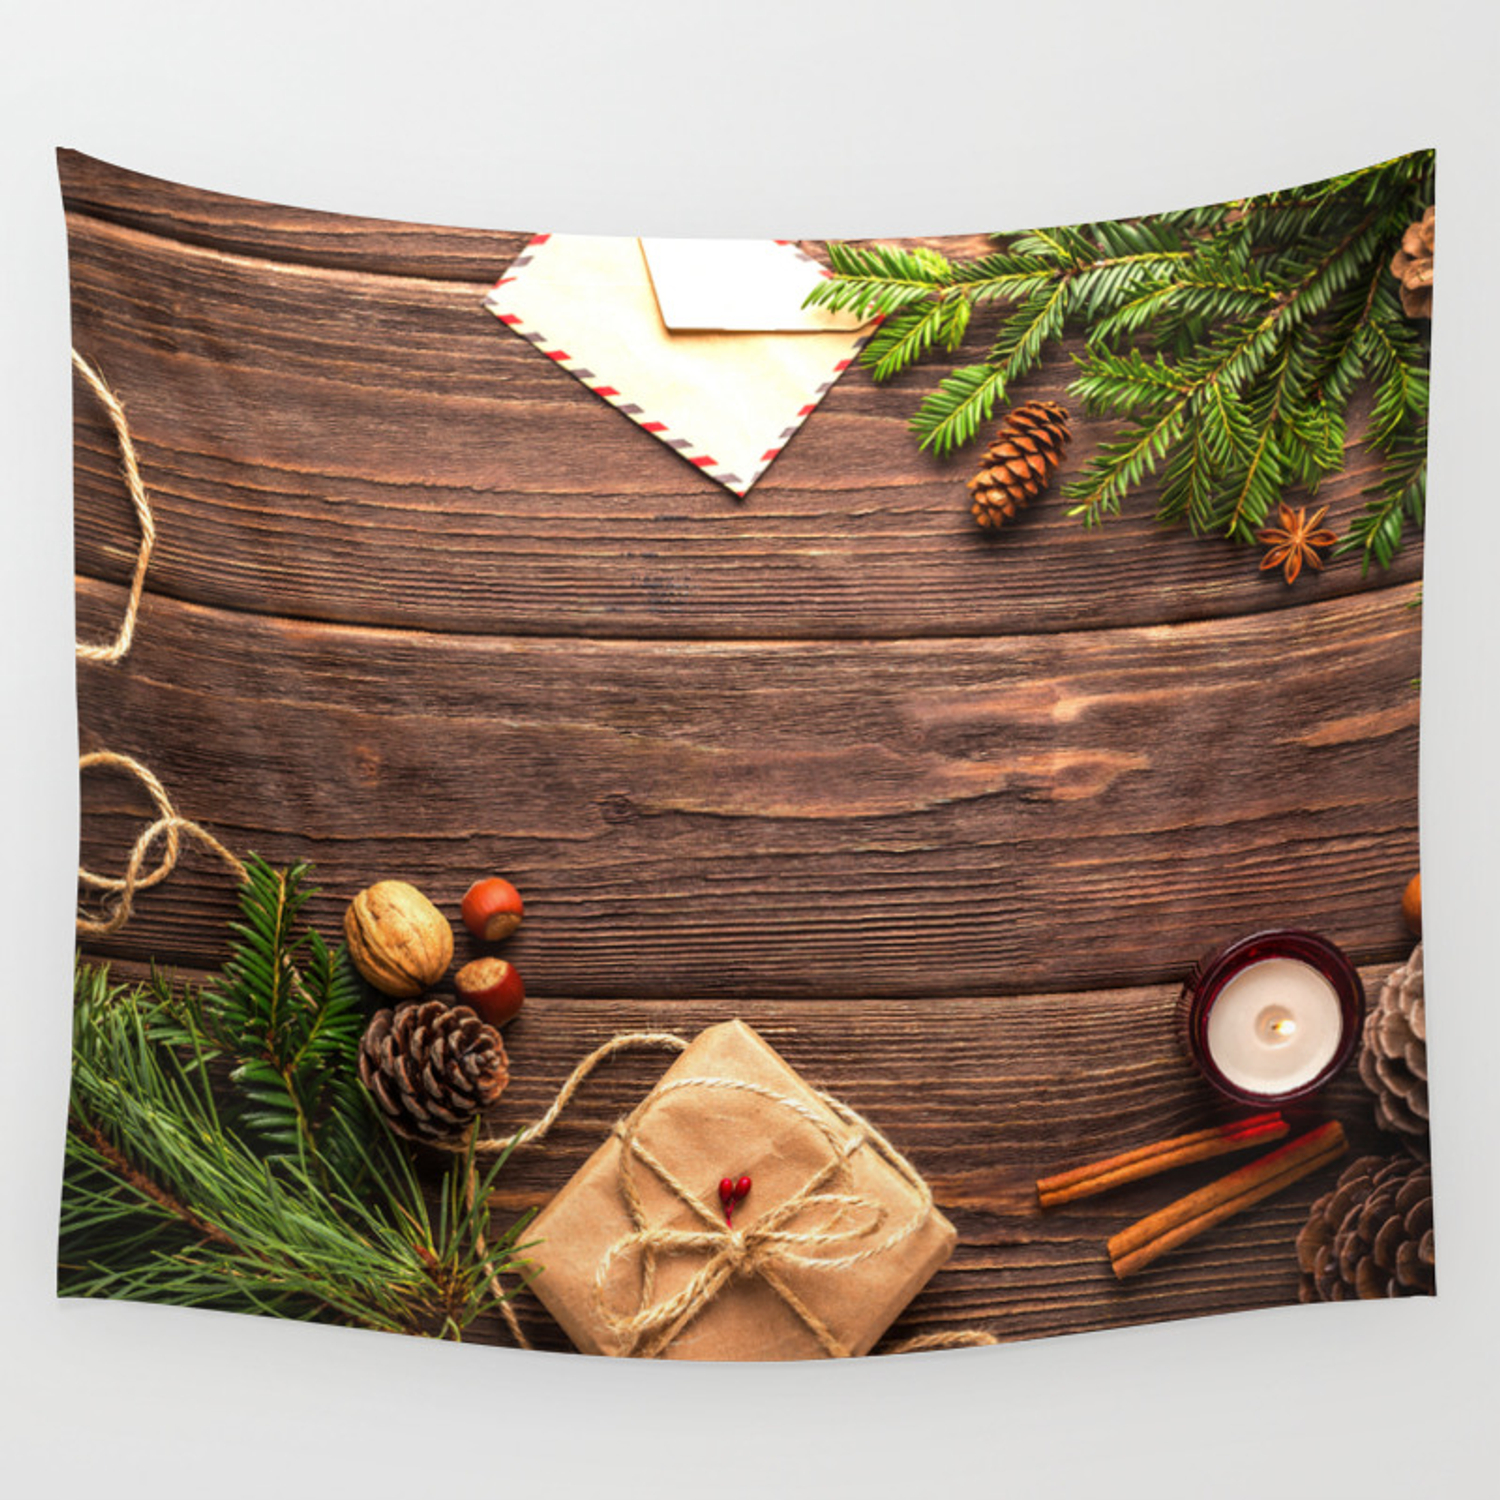 Christmas Holiday Rustic Decor Wooden Planks Wall Tapestry